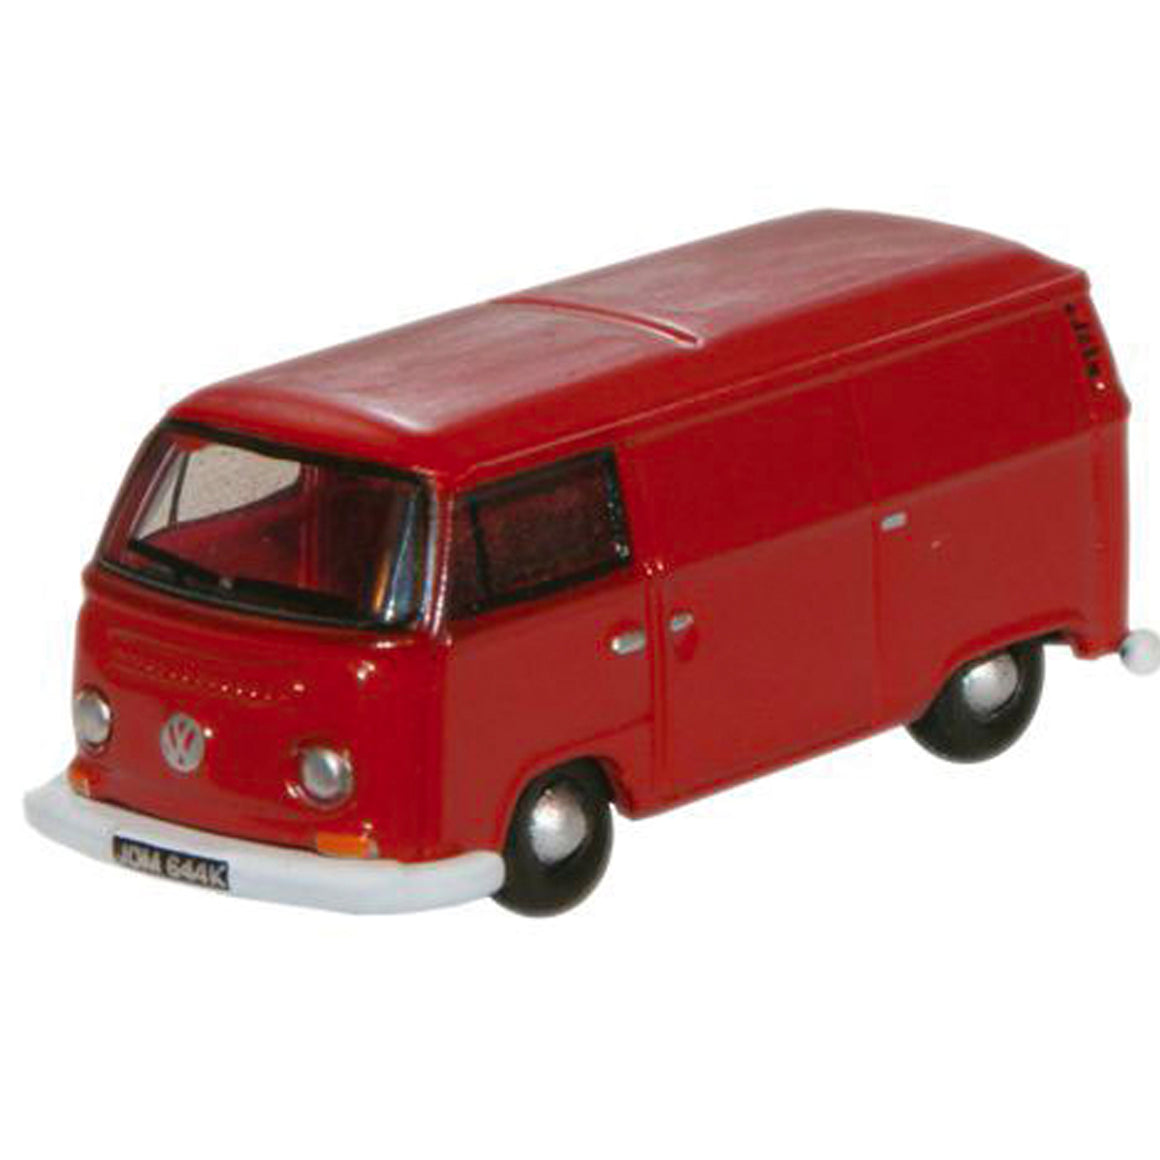 N Scale: Volkswagen Van - Senegal Red